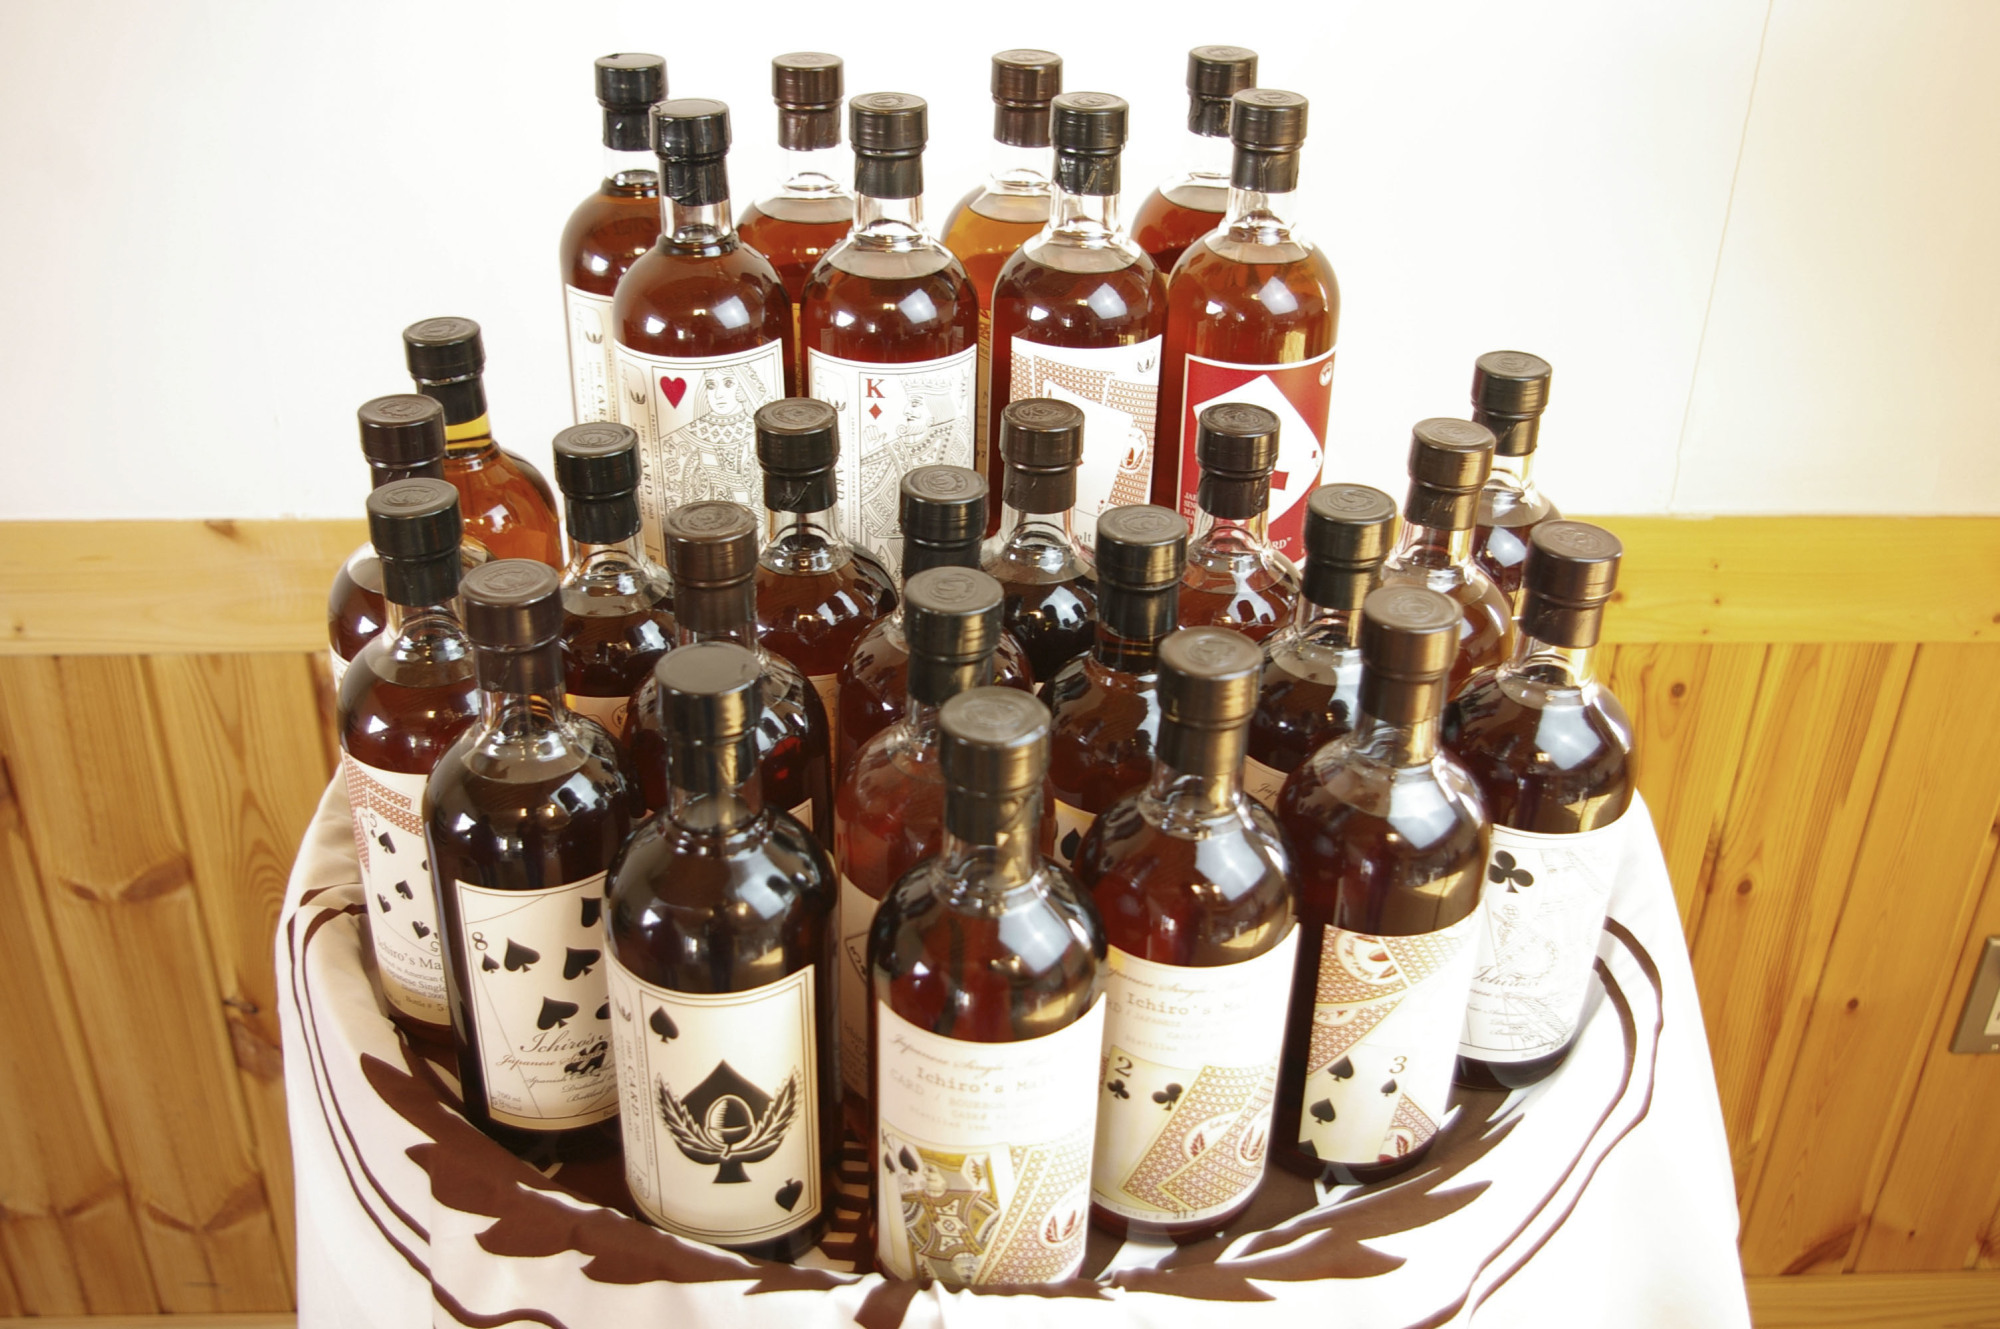 Liquid gold: The 54 bottles of  Japanese whisky sold for more than ¥97 million at a Hong Kong auction. | KYODO